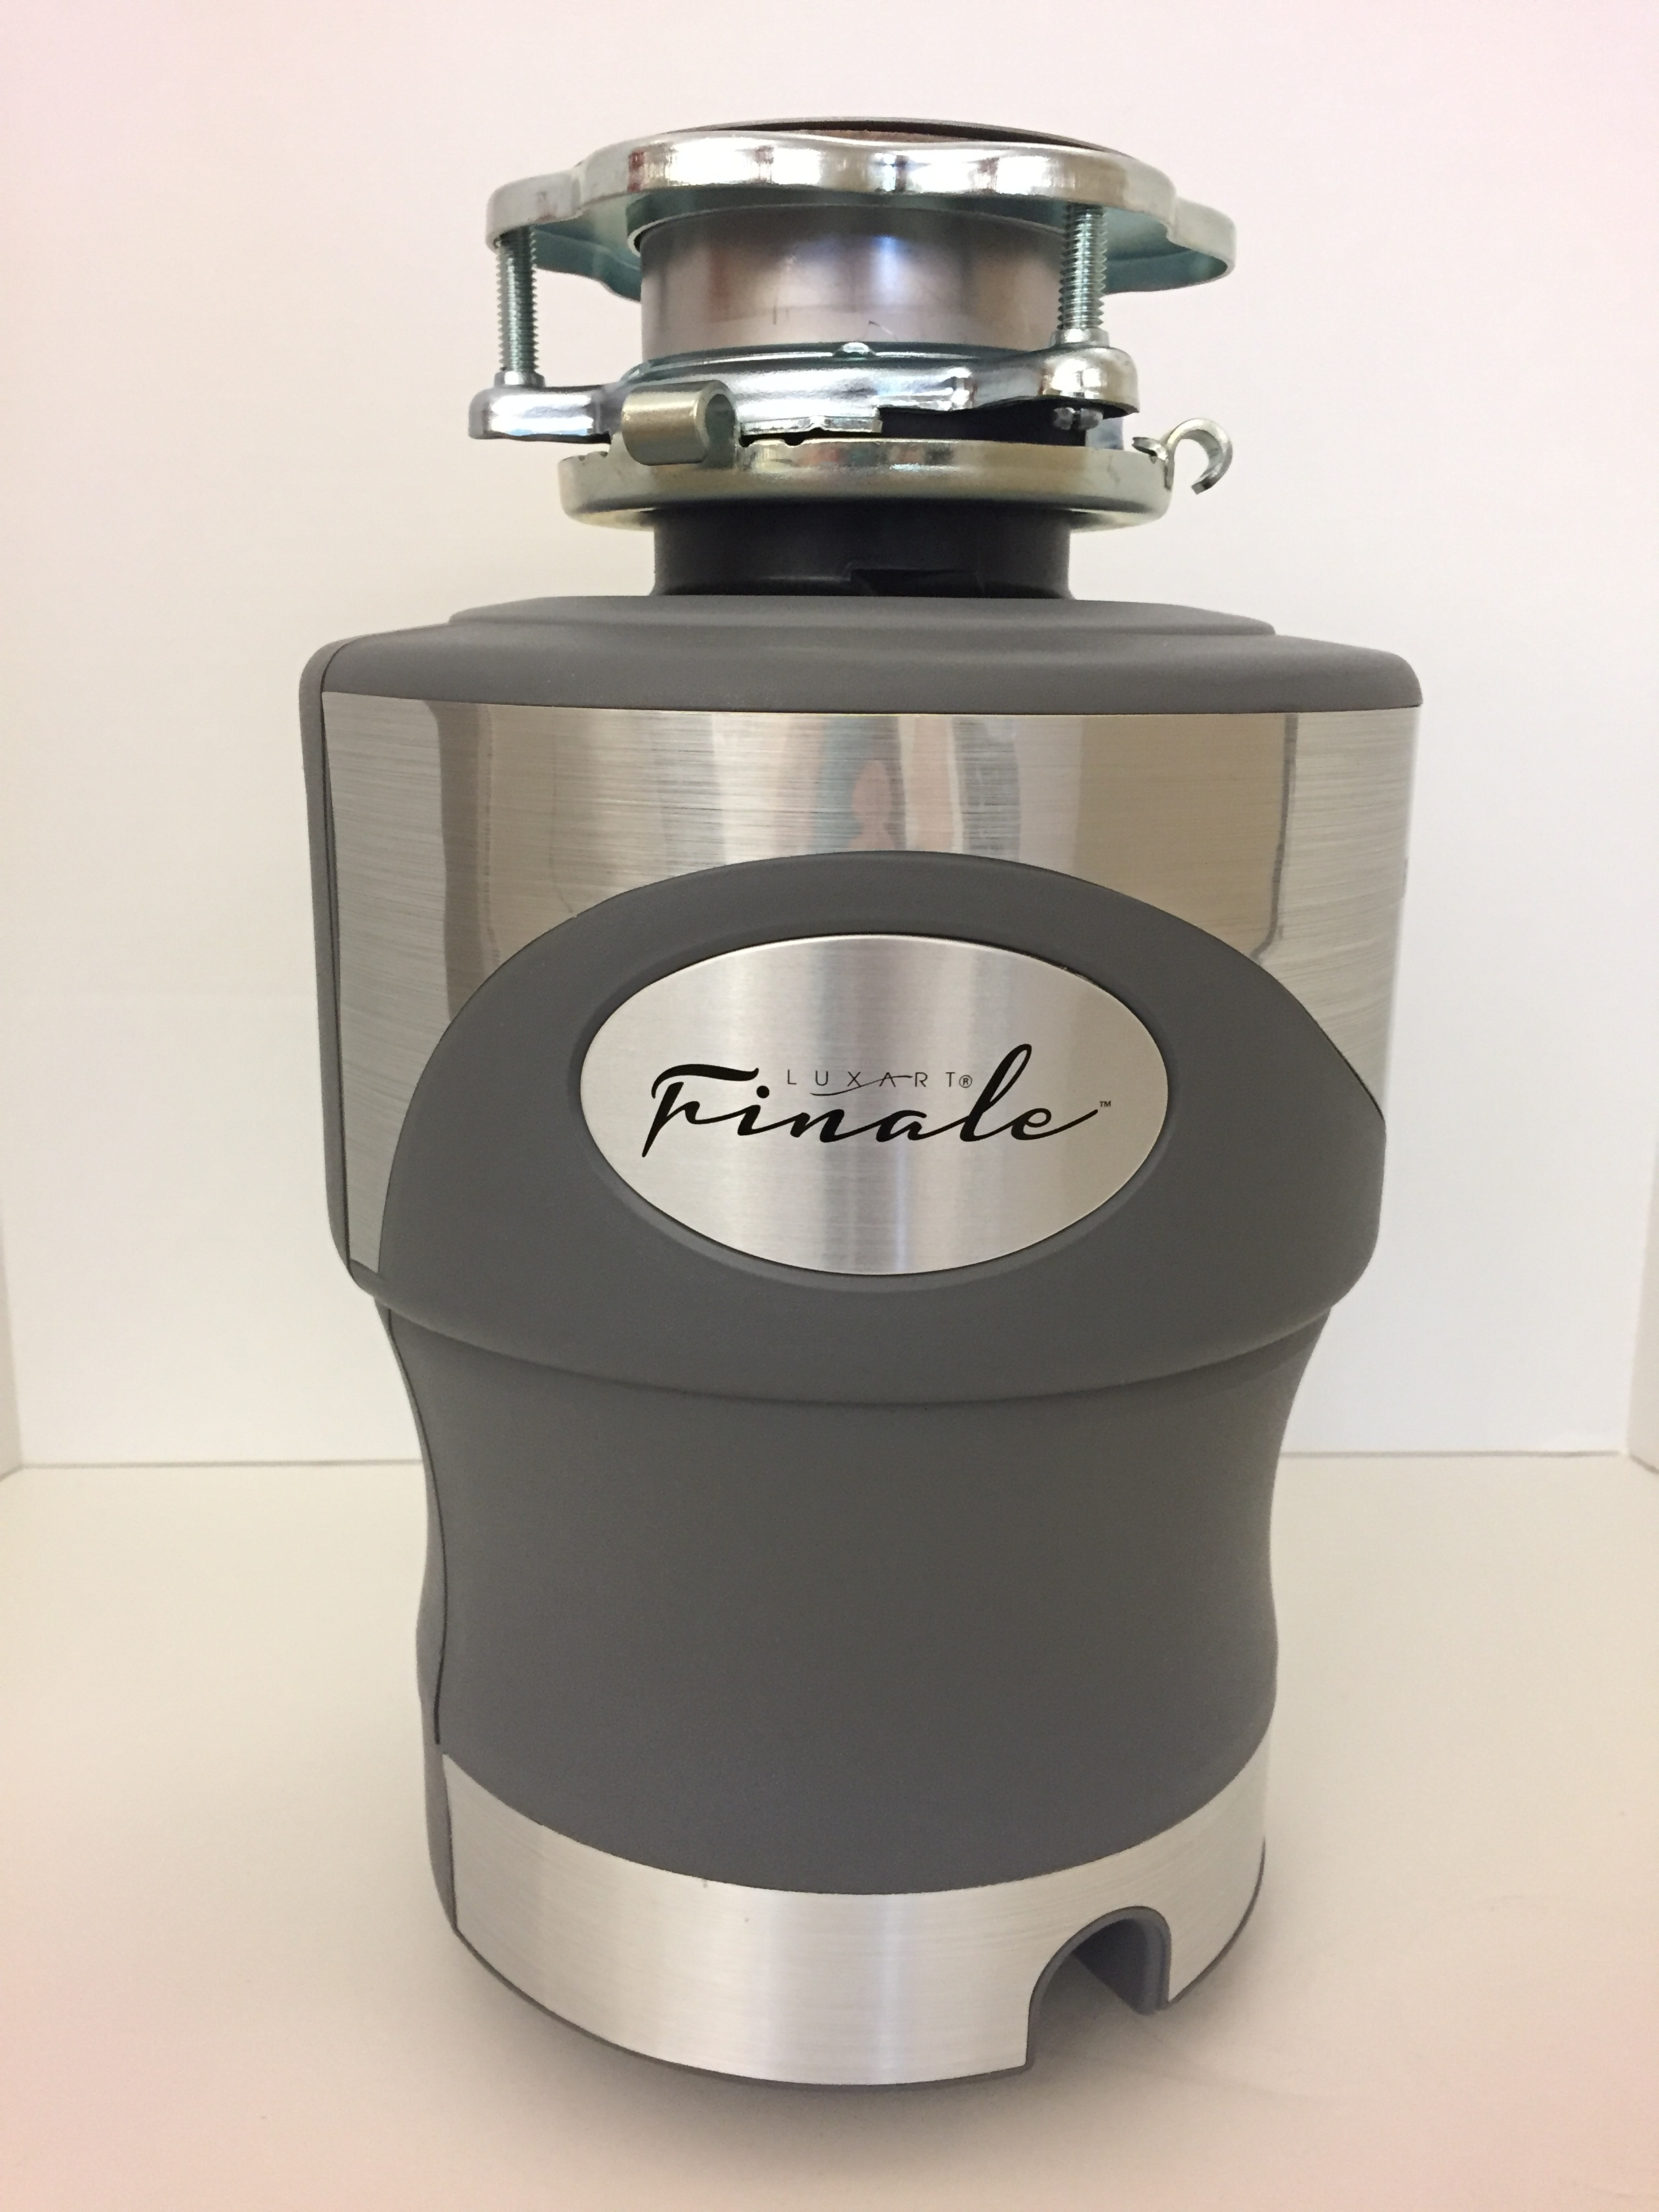 Luxart Finale 3/4 HP Garbage Disposer (model no. LXFIN34C)